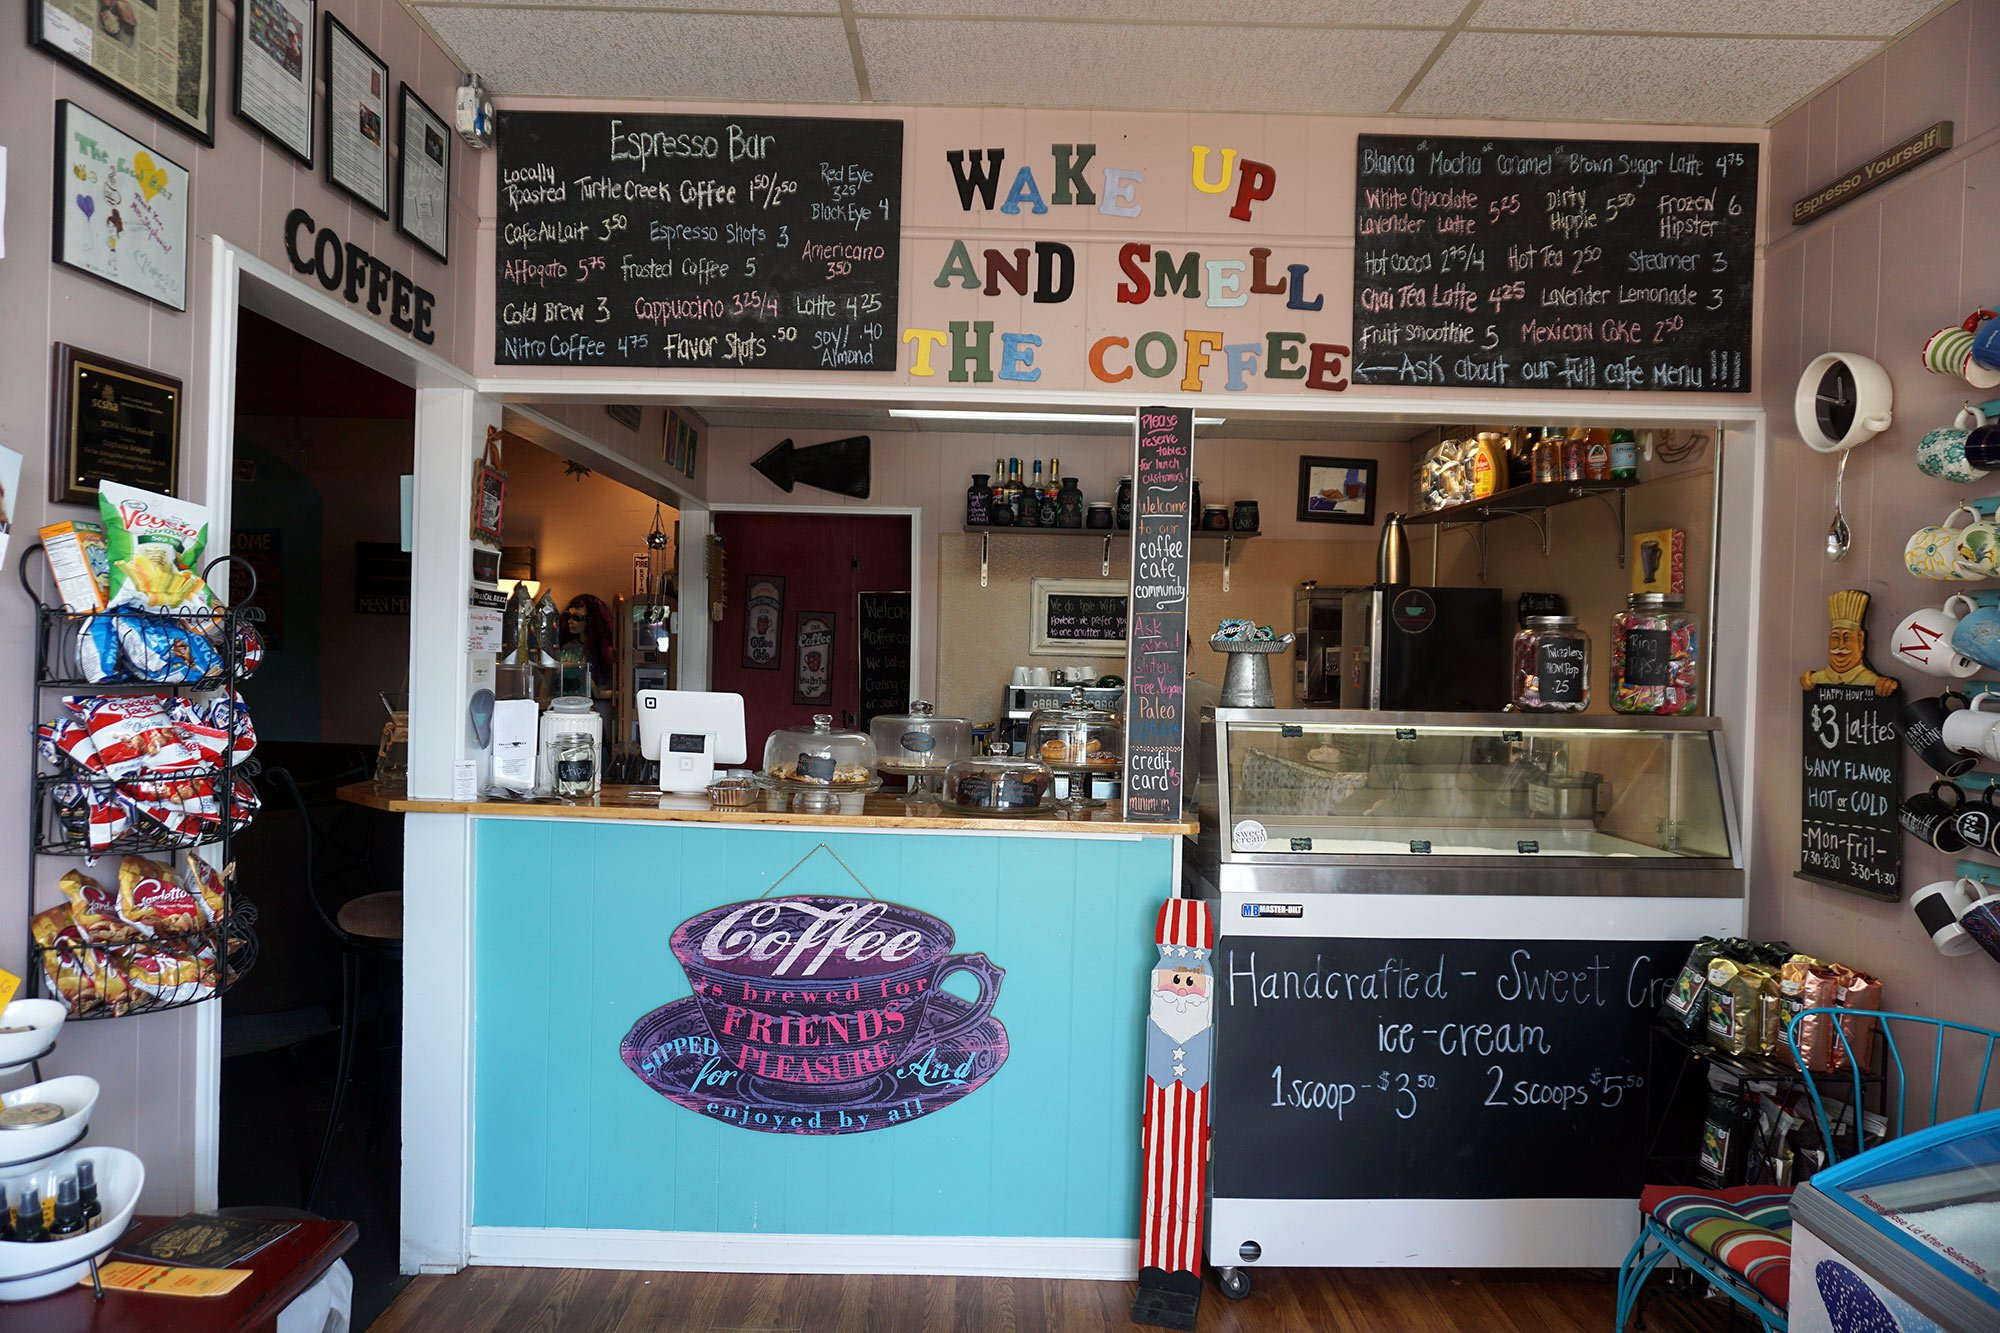 The Local Buzz in Columbia serves a variety of coffee, dessert, and sandwiches. Customers could get a free cup of coffee with purchase of an espresso brownie in honor of National Coffee Day.